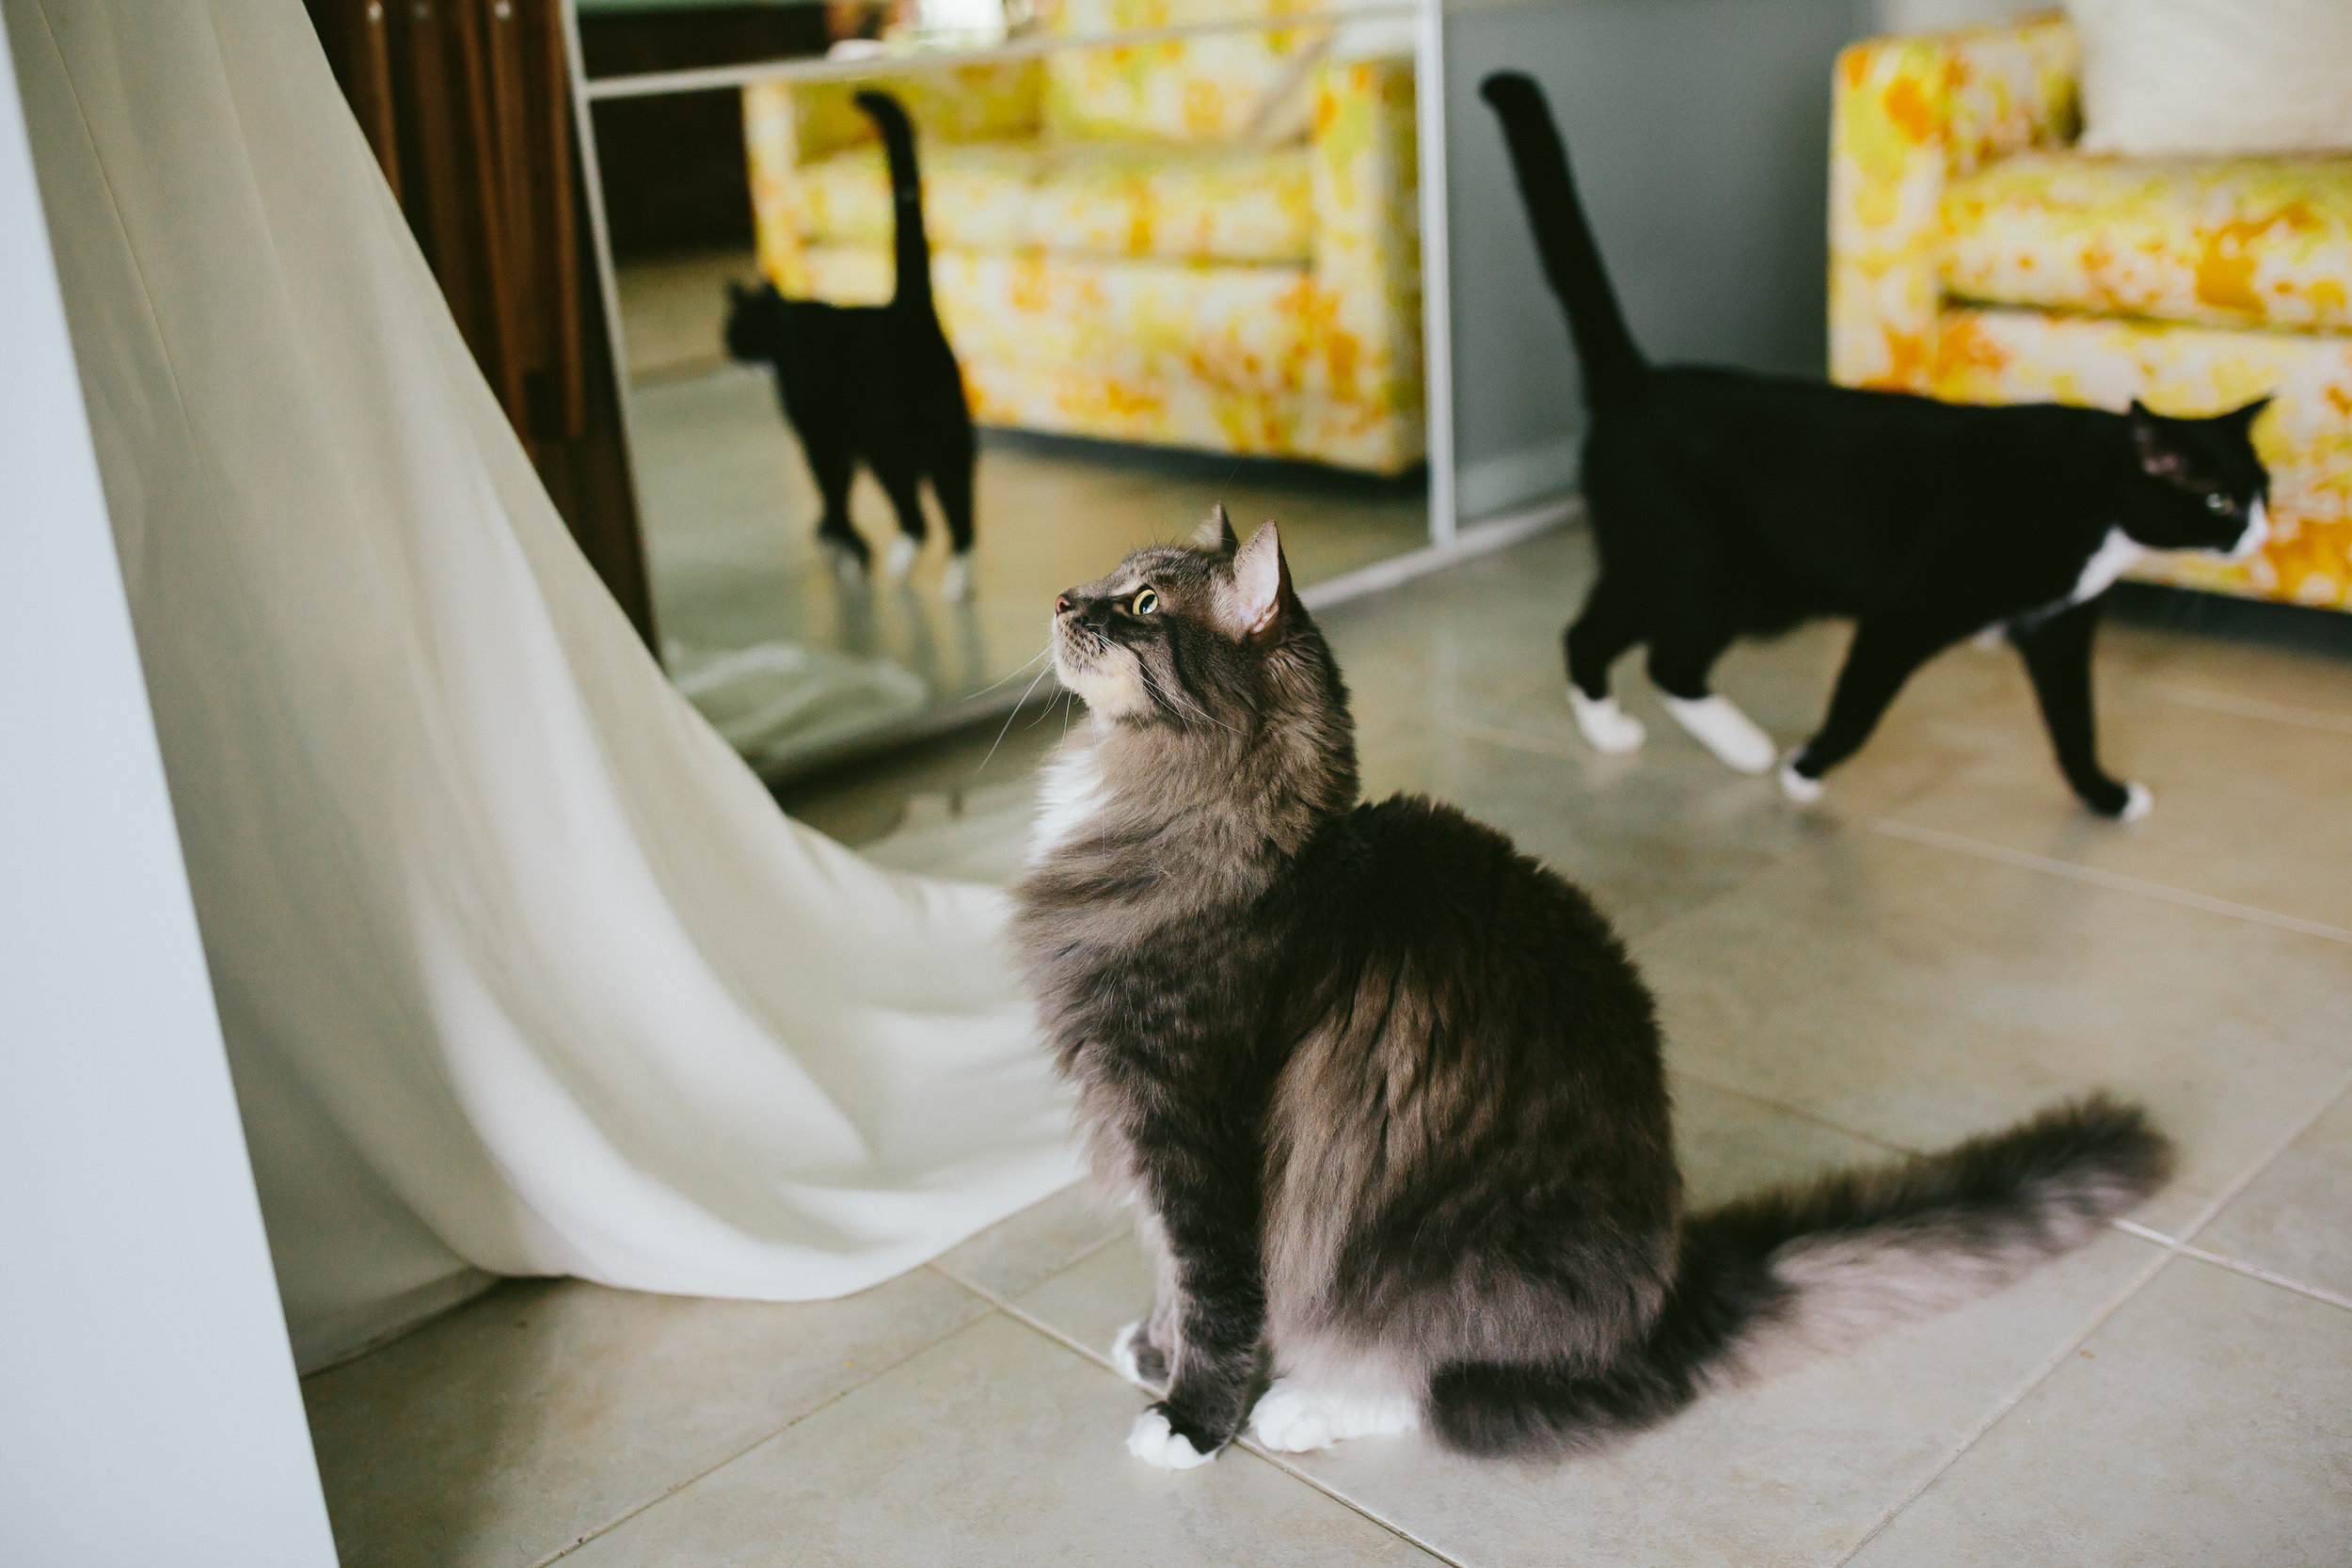 bride_and_groom_cats_in_home_session_wedding_fort_lauderdale_photographer_steph_lynn_photo-99.jpg